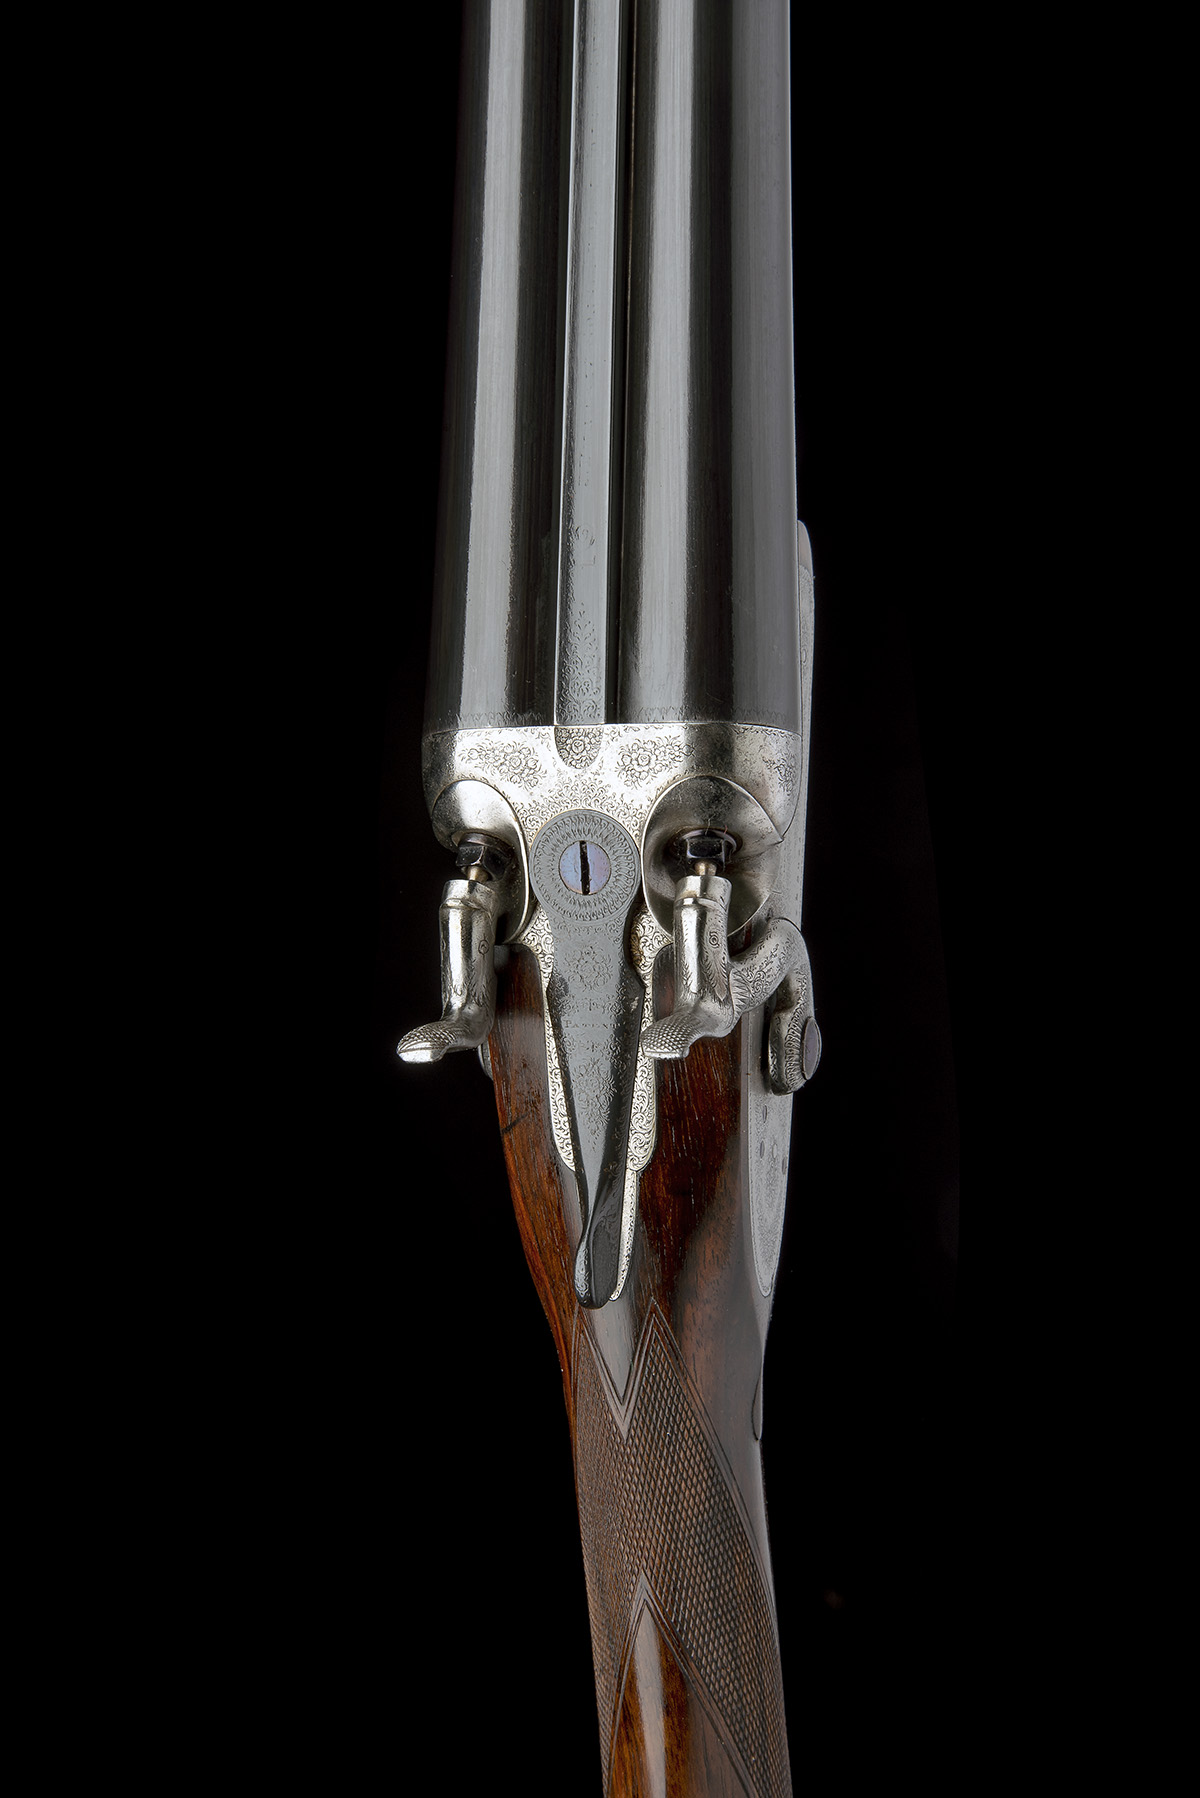 J. PURDEY & SONS A 12-BORE BAR-IN-WOOD TOPLEVER HAMMERGUN, serial no. 11619, circa 1883, 30in. nitro - Image 4 of 7